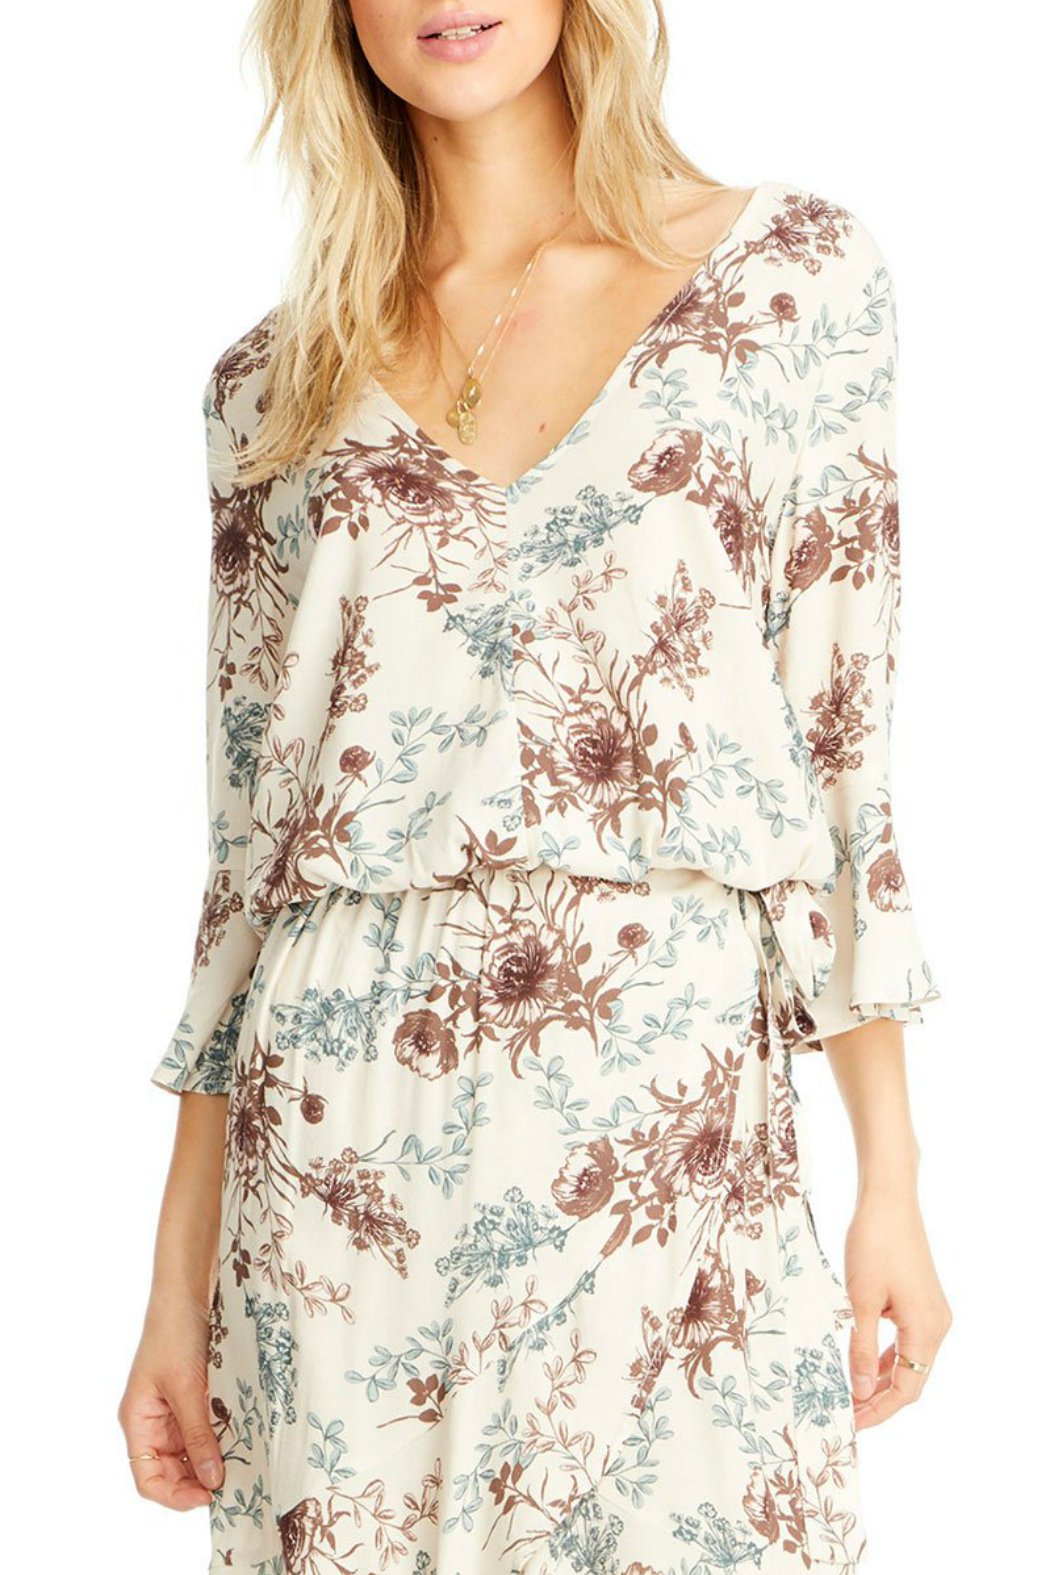 Saltwater Luxe Lyla 3/4 Bell Sleeve Blouse - Main Image